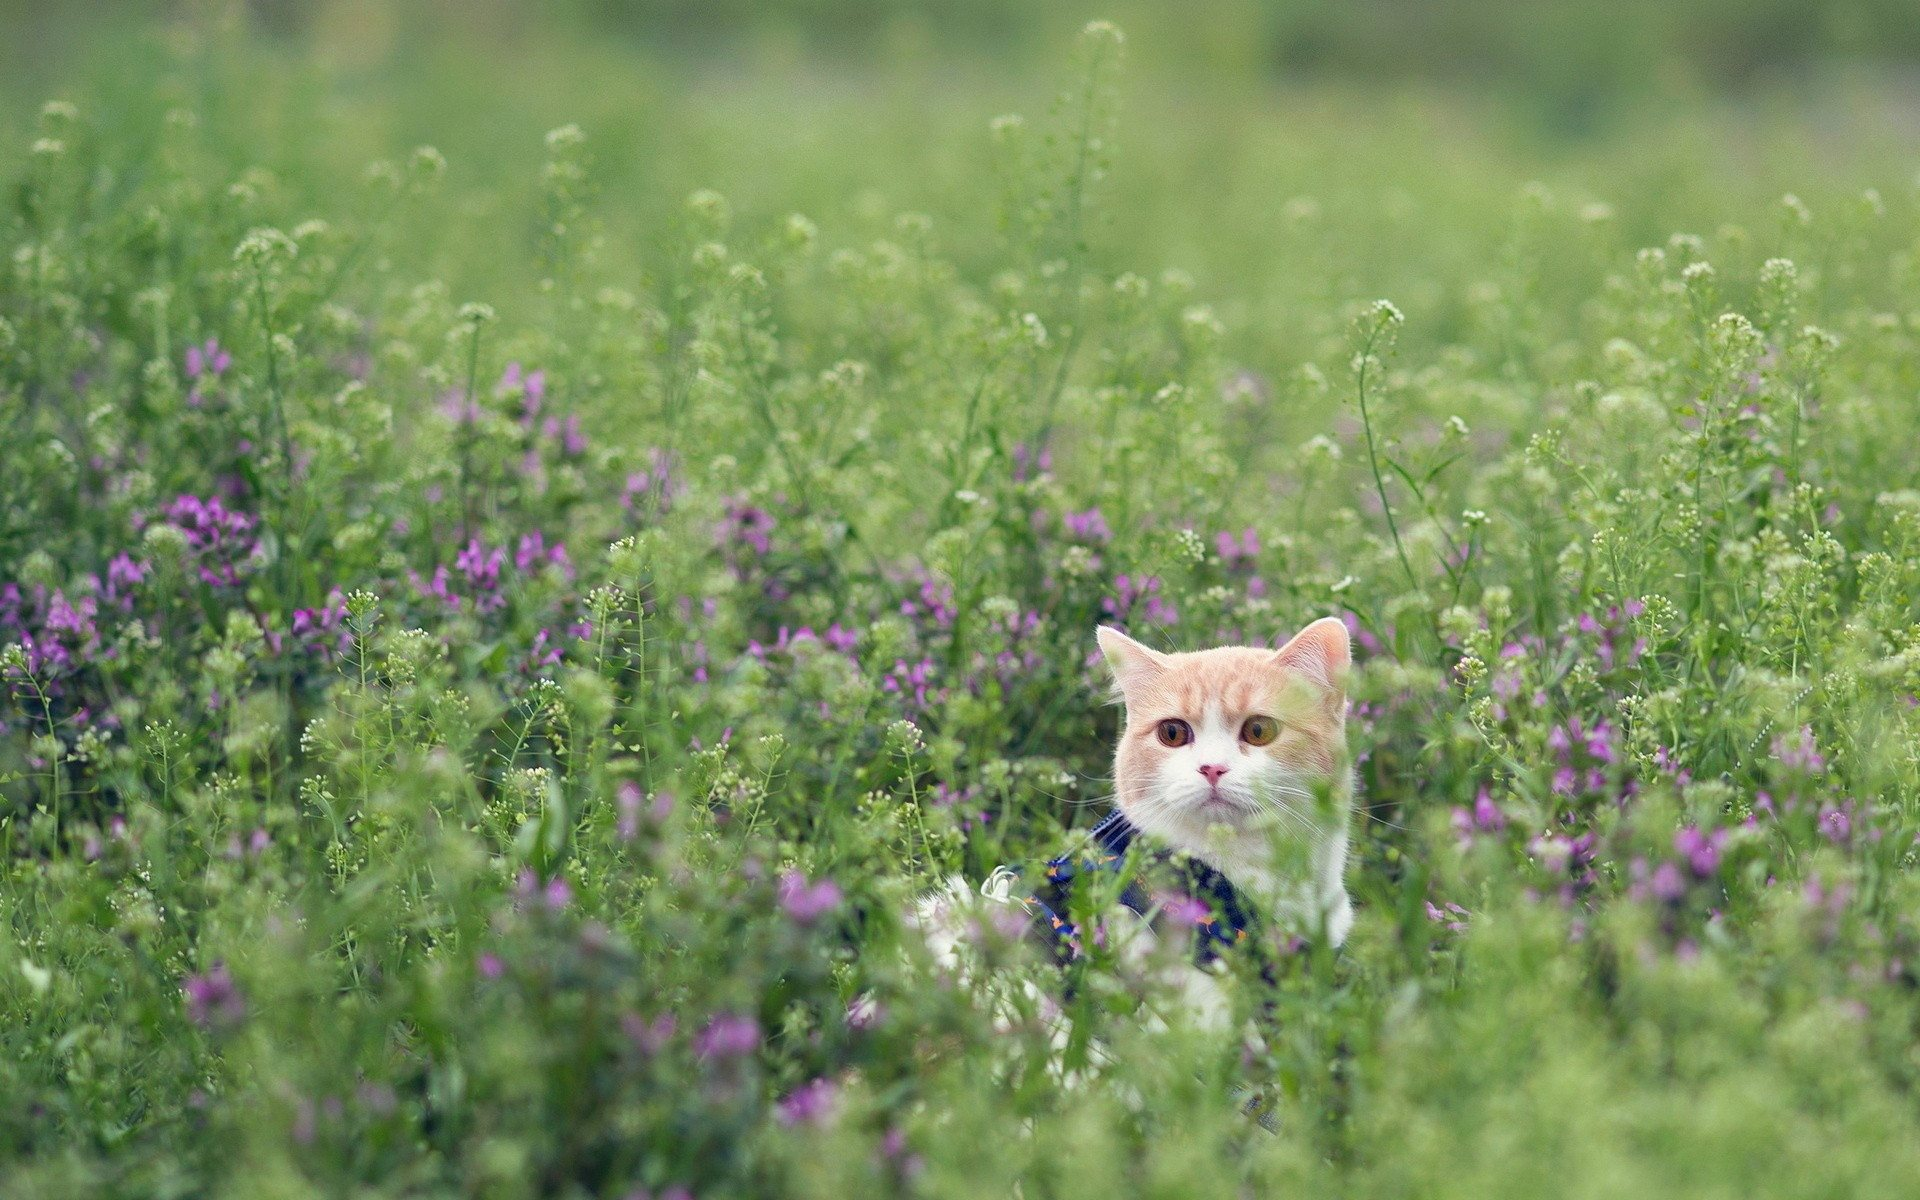 cat in flowers wallpaper background